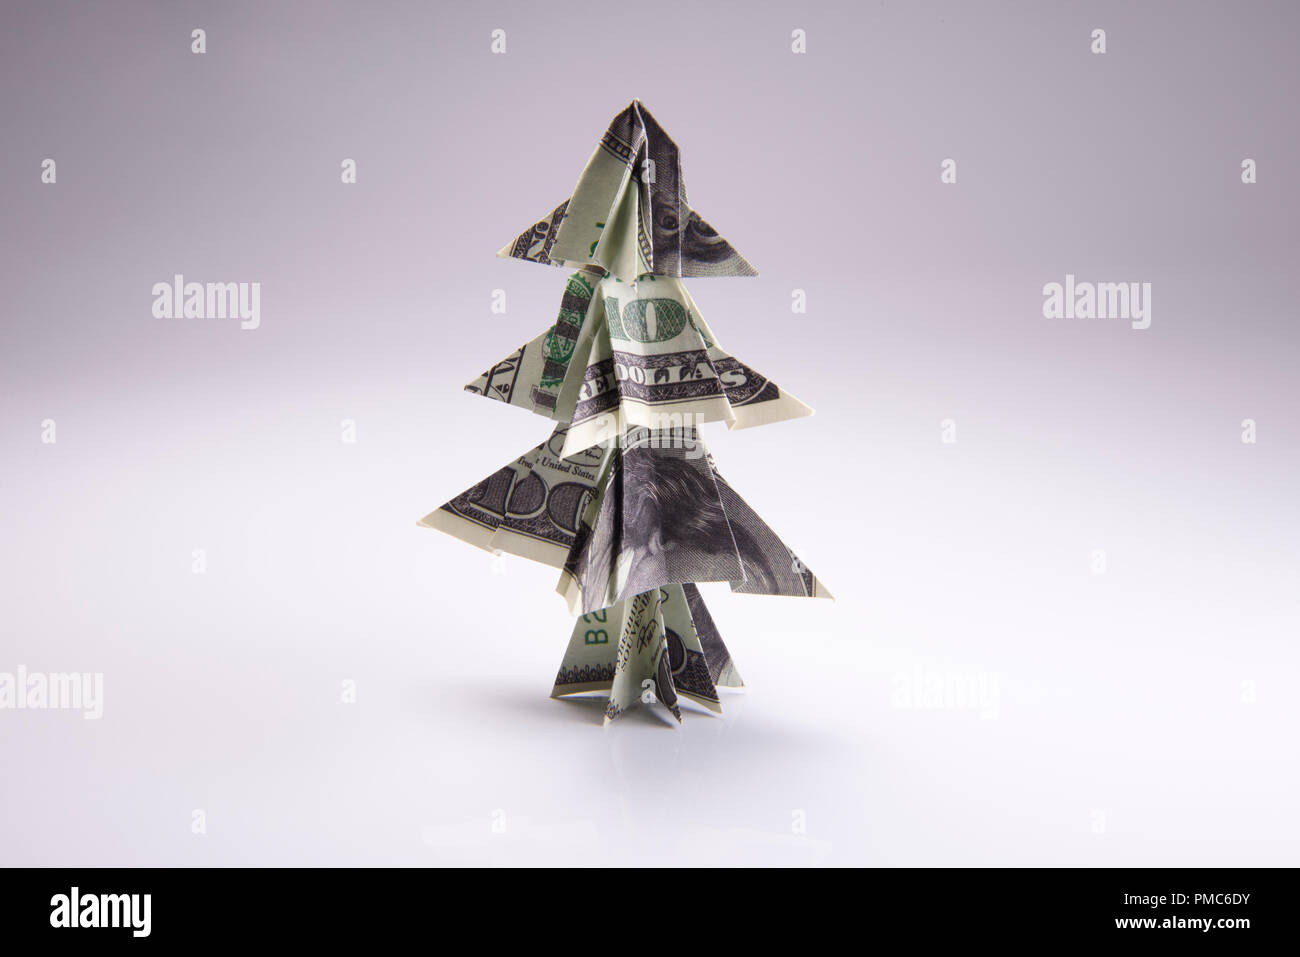 How to Make a Money Tree   A Stylish Way to Give Cash for ...   957x1300